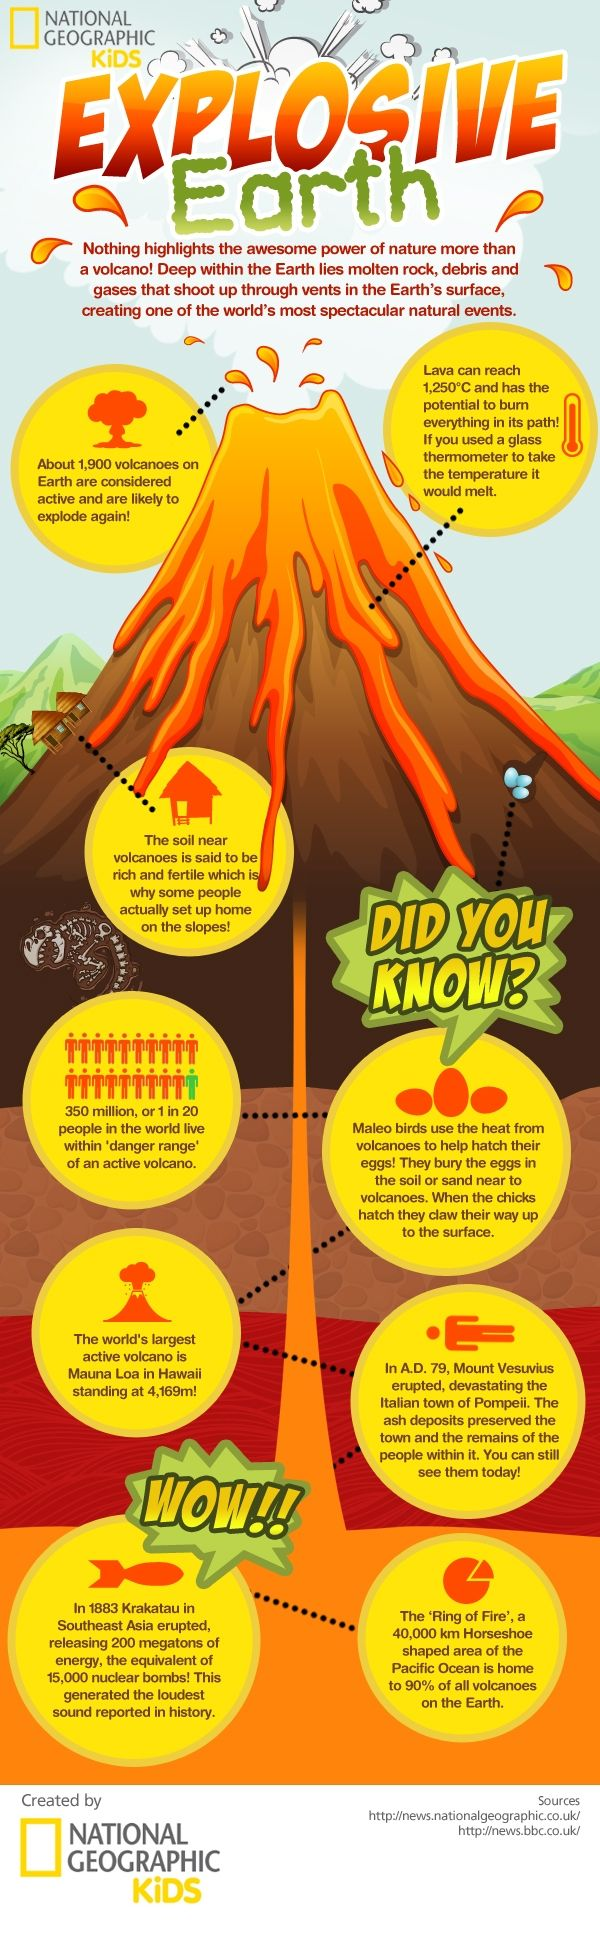 http://www.ngkids.co.uk/science-and-nature/Volcano-Facts